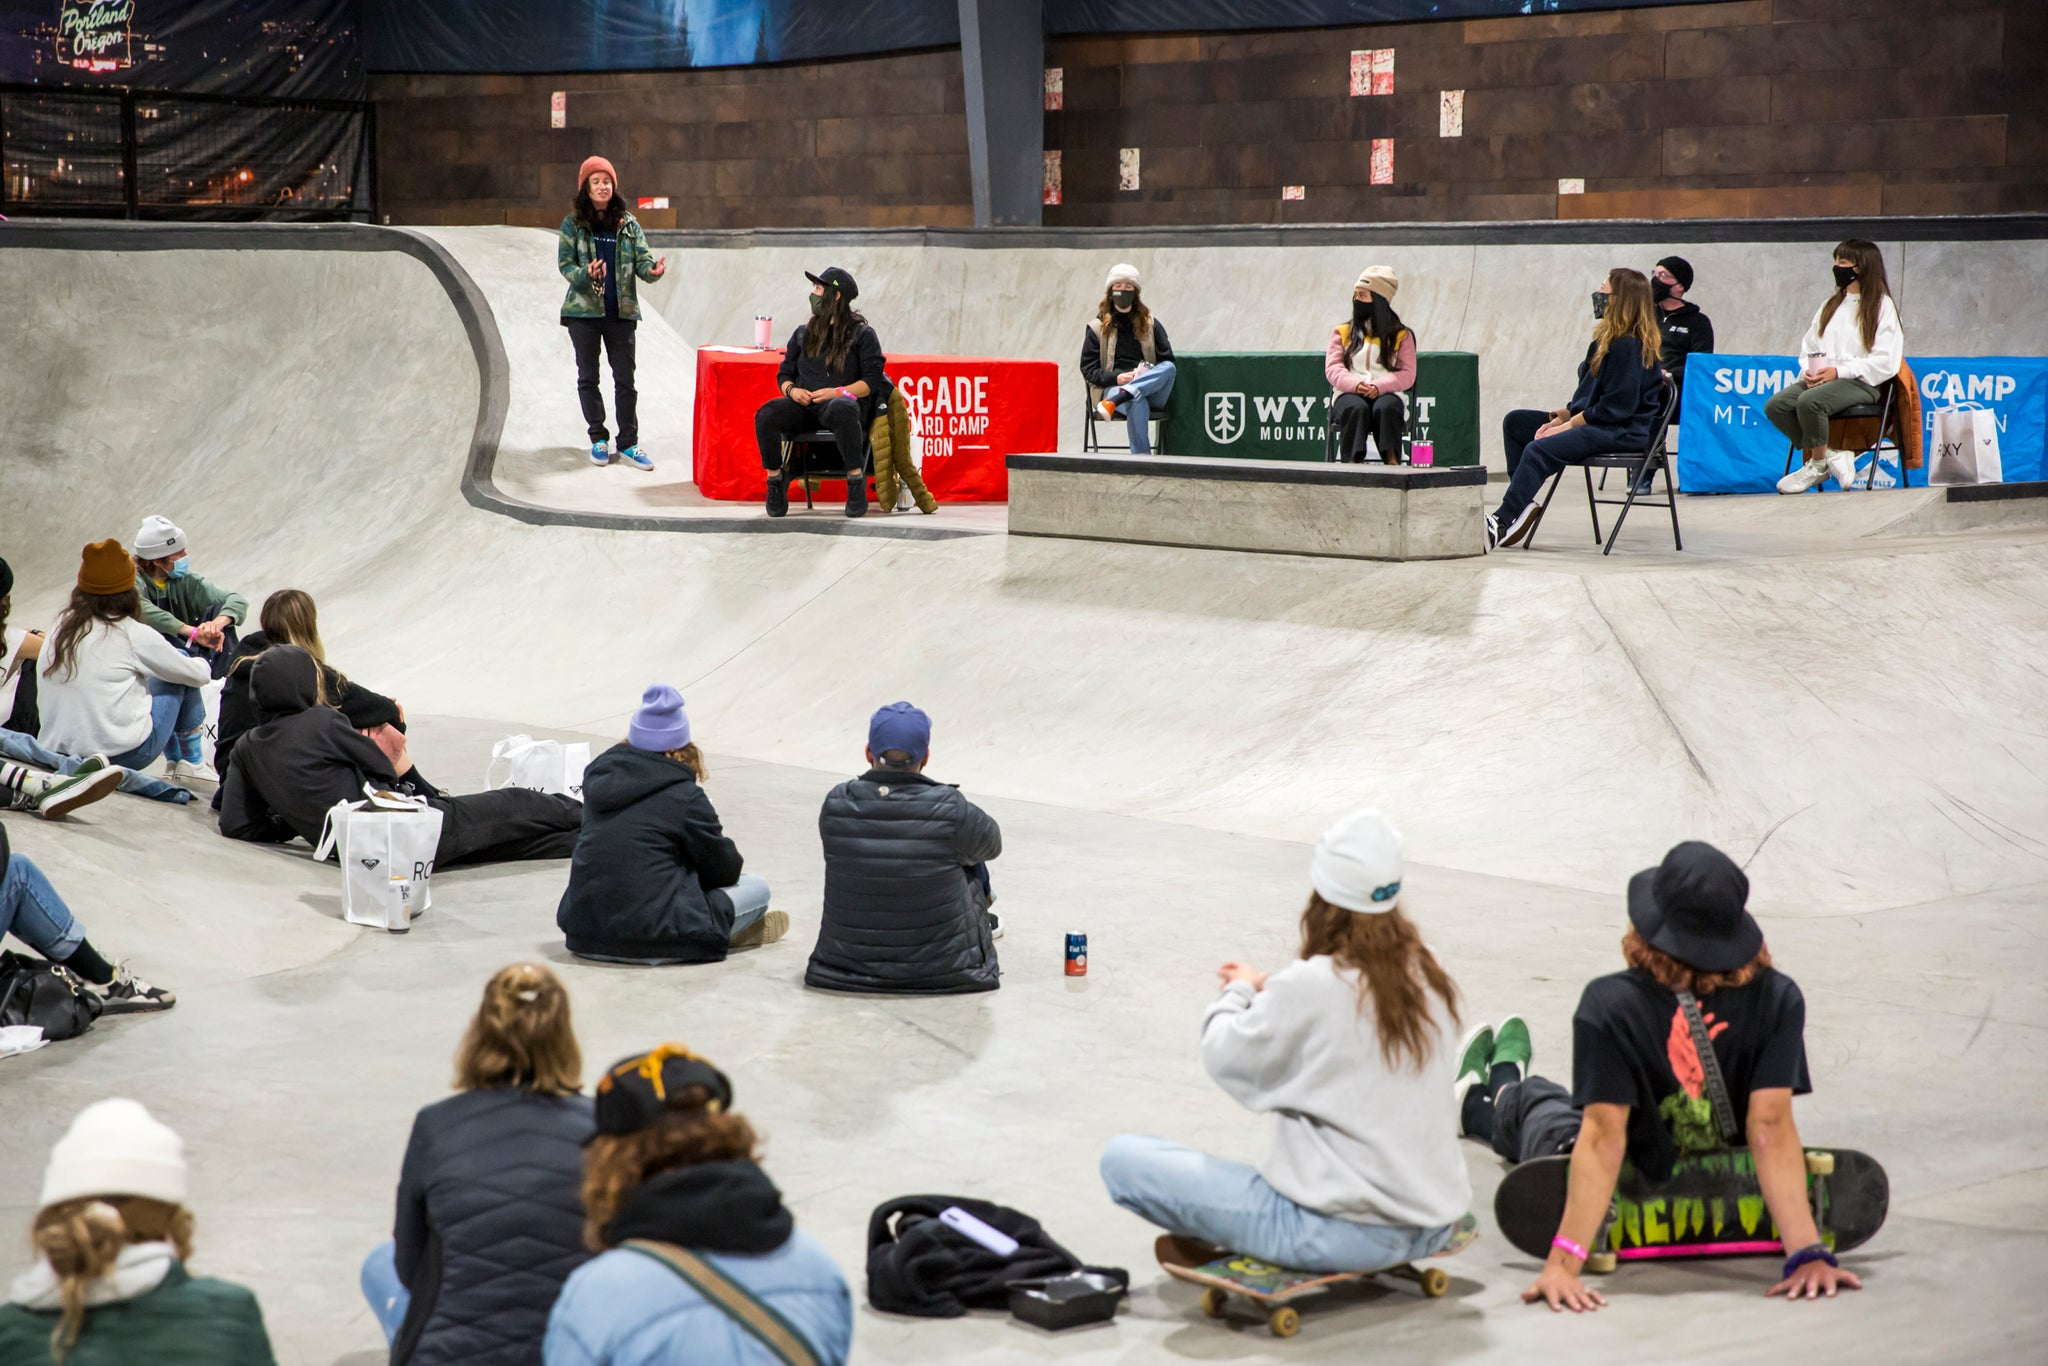 IT'S TITS! attendees gathered (following all COVID regulations) in BOB, the indoor skatepark at High Cascade for the first-ever Pitch Sessions panel discussion. // p: Ashley Rosemeyer